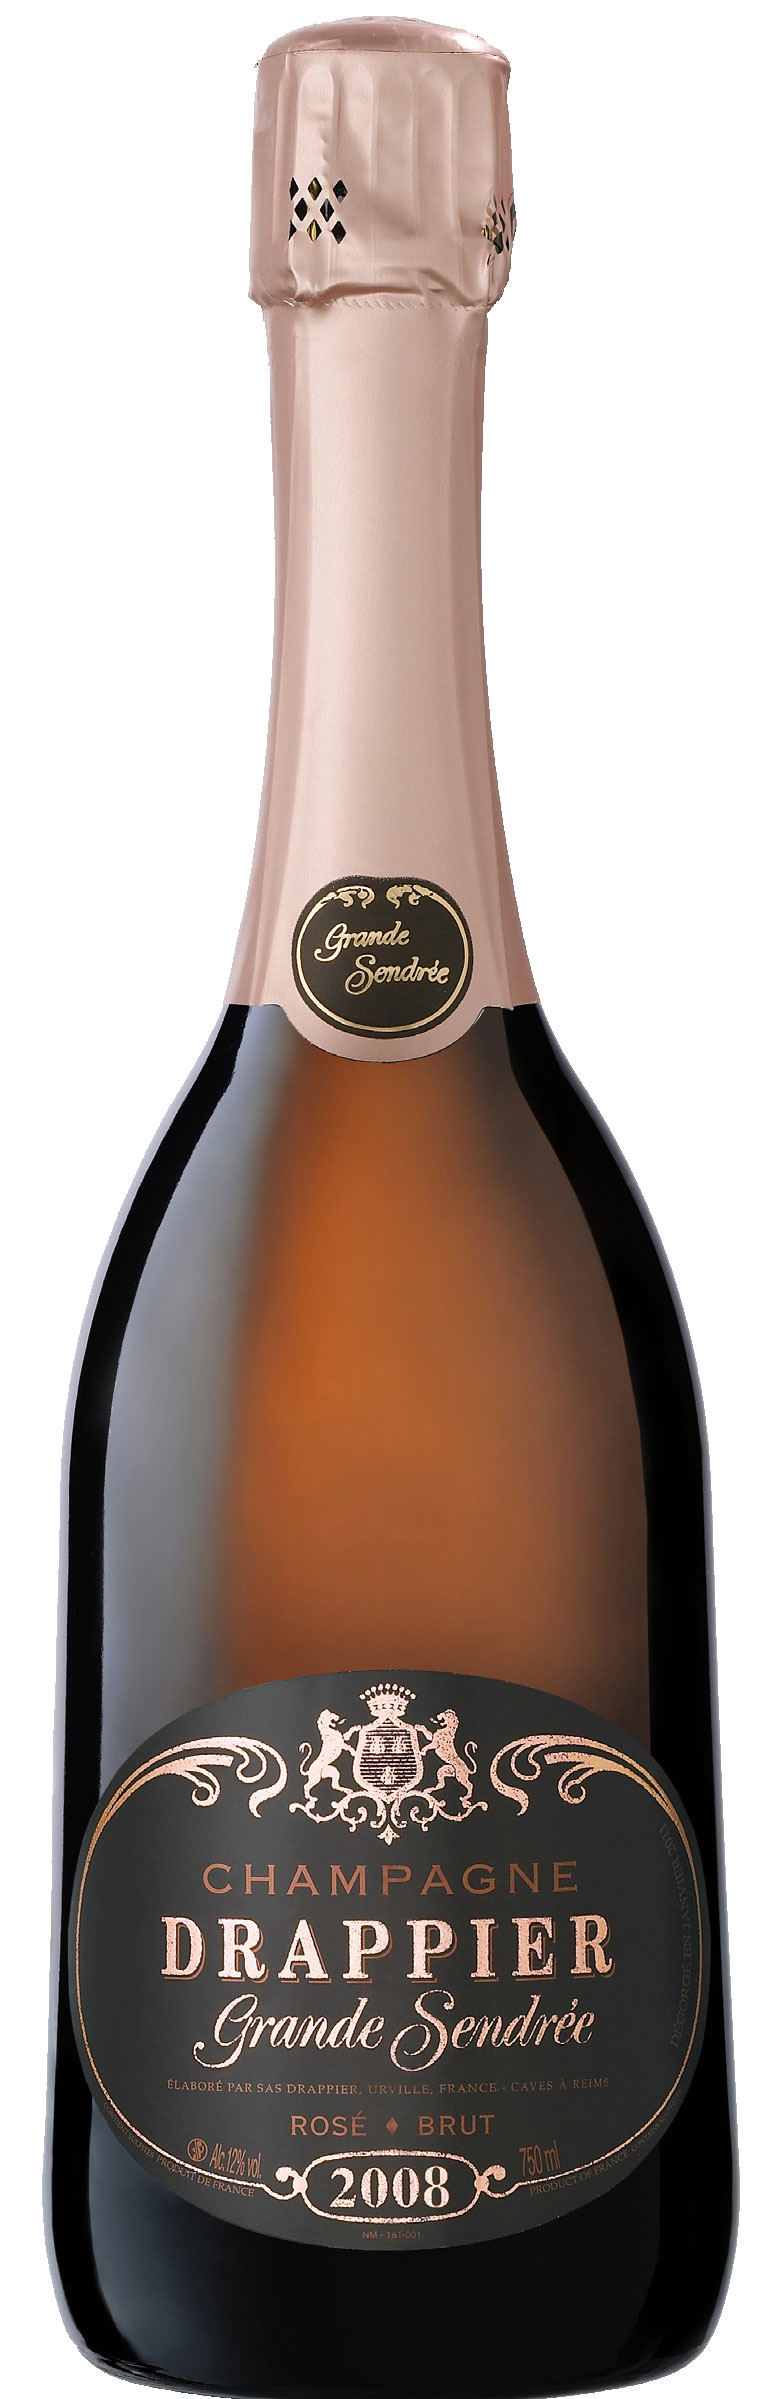 Champagne Drappier - Grande Sendree Rose 2010 6x 75cl Bottles